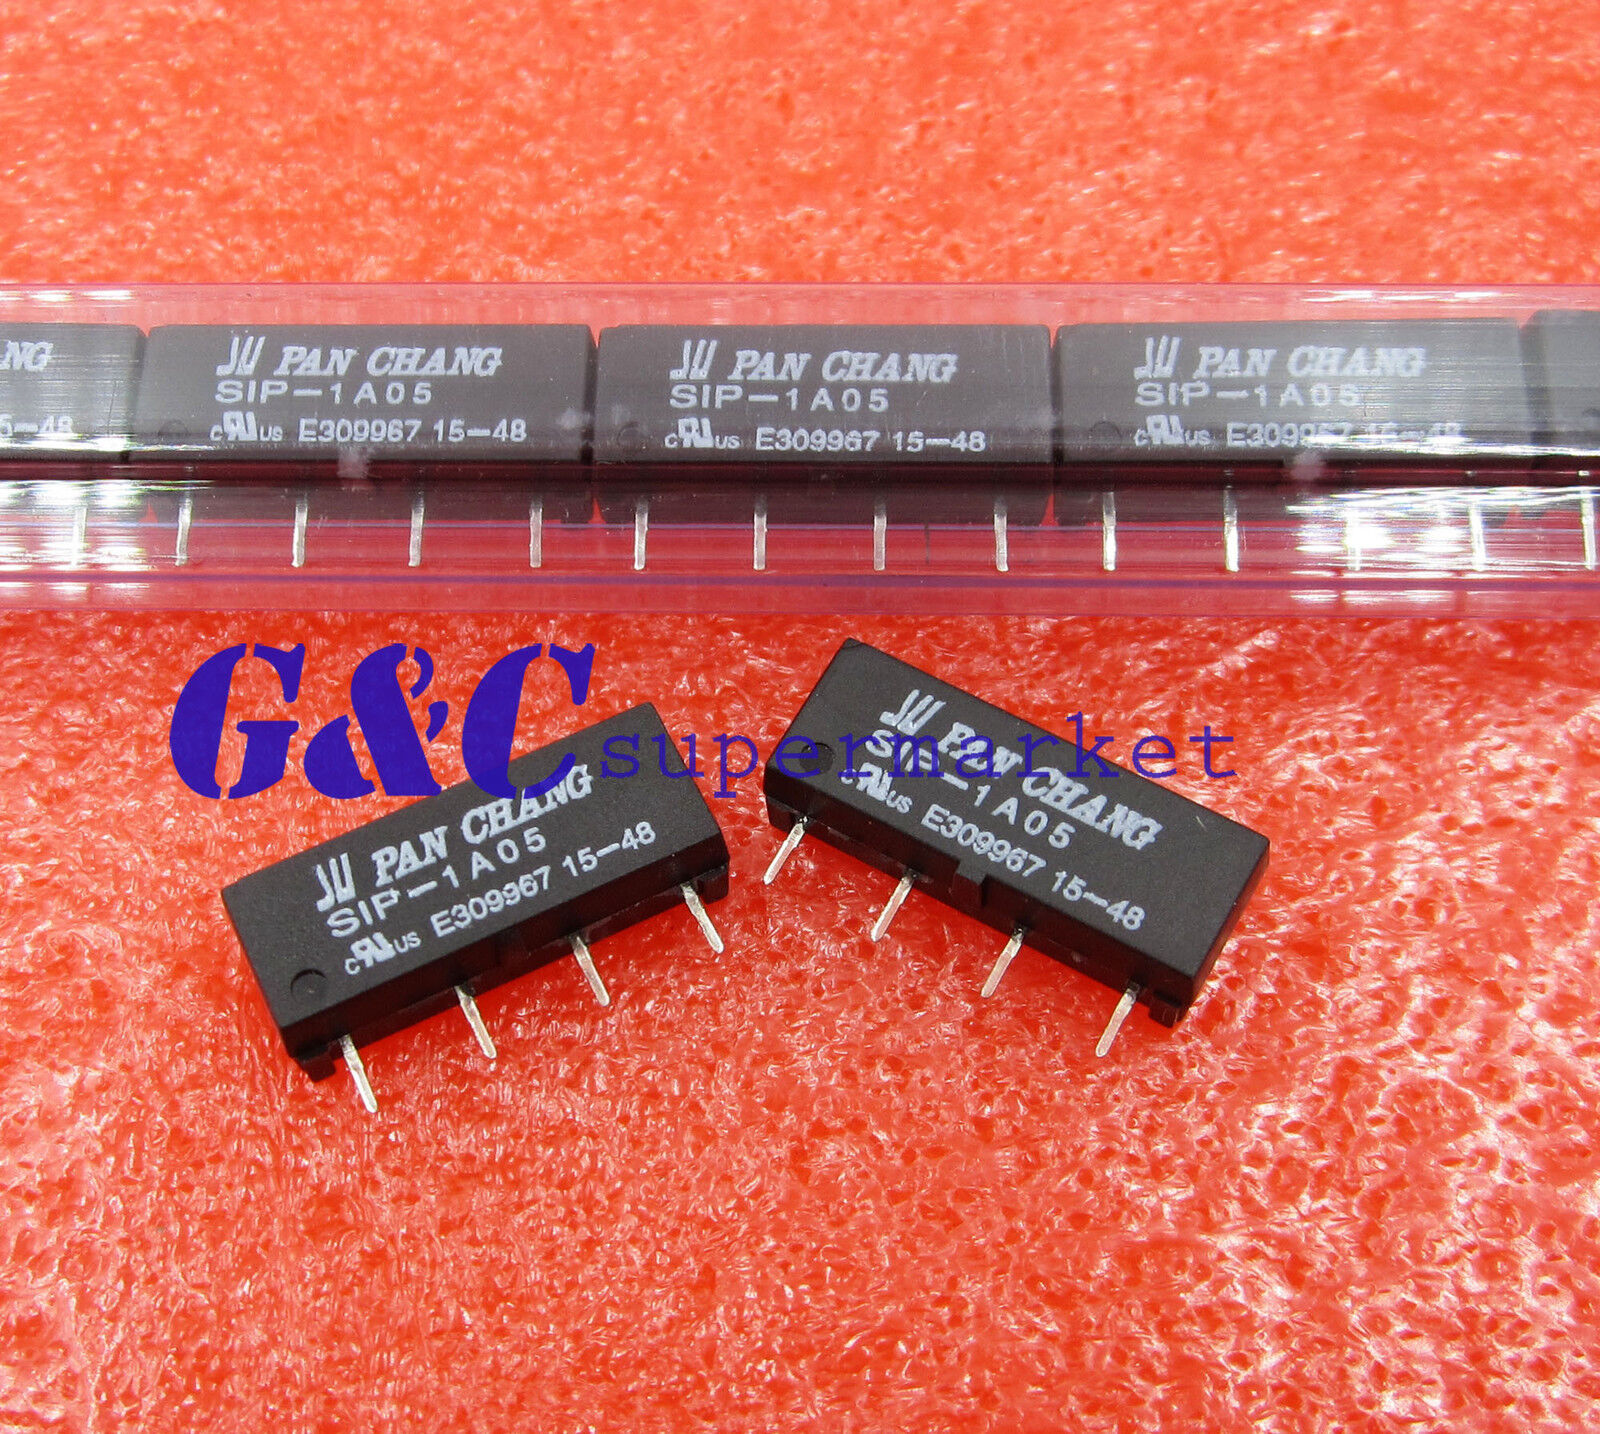 5v Relay Sip 1a05 Reed Switch For Pan Chang 4pin New